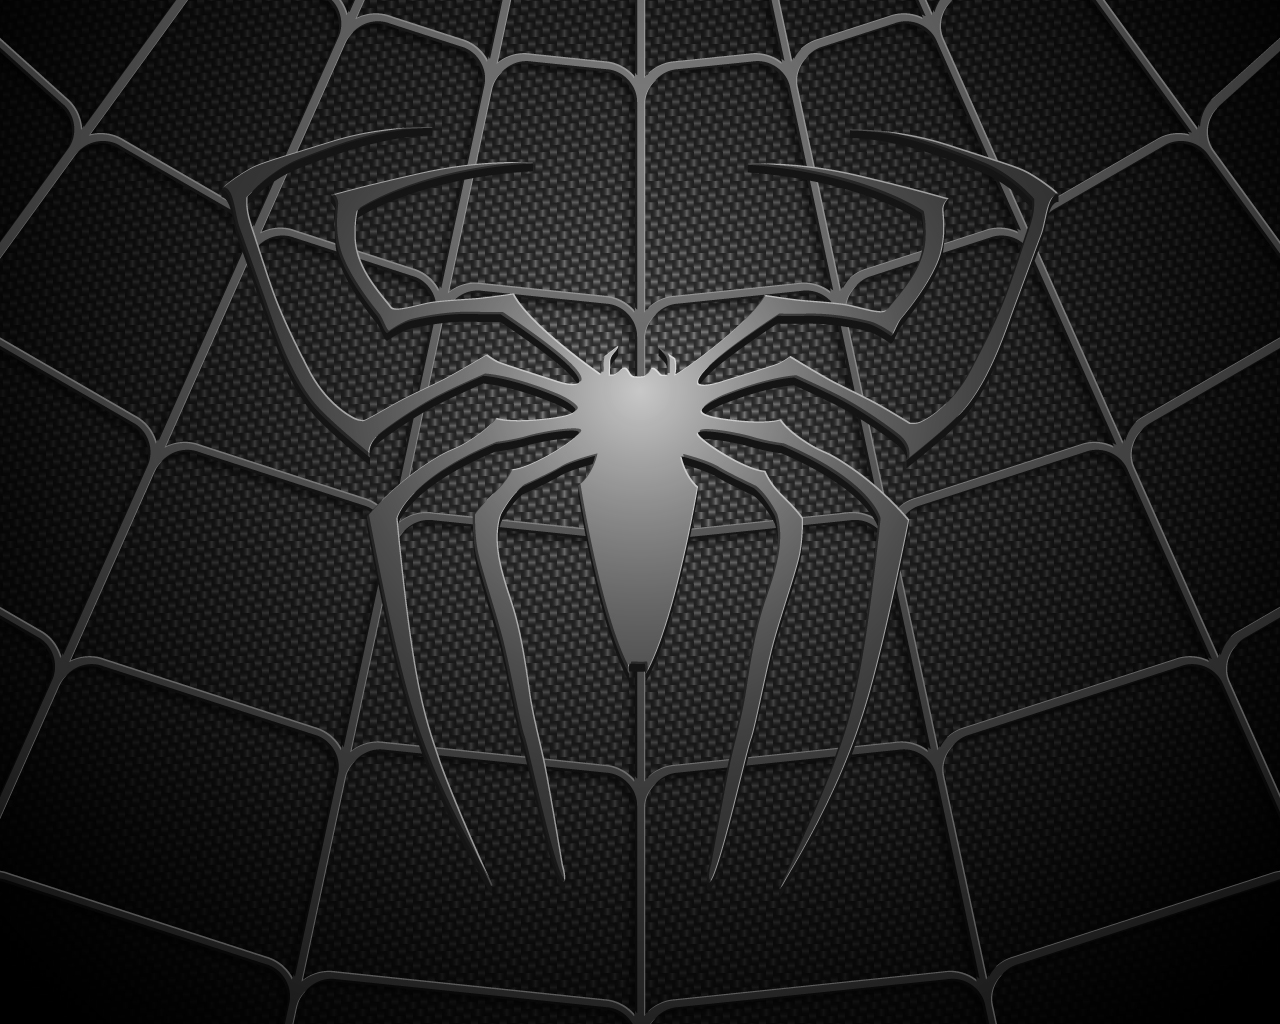 Spiderman Logo Hd Wallpaper Spiderman logo 1280x1024